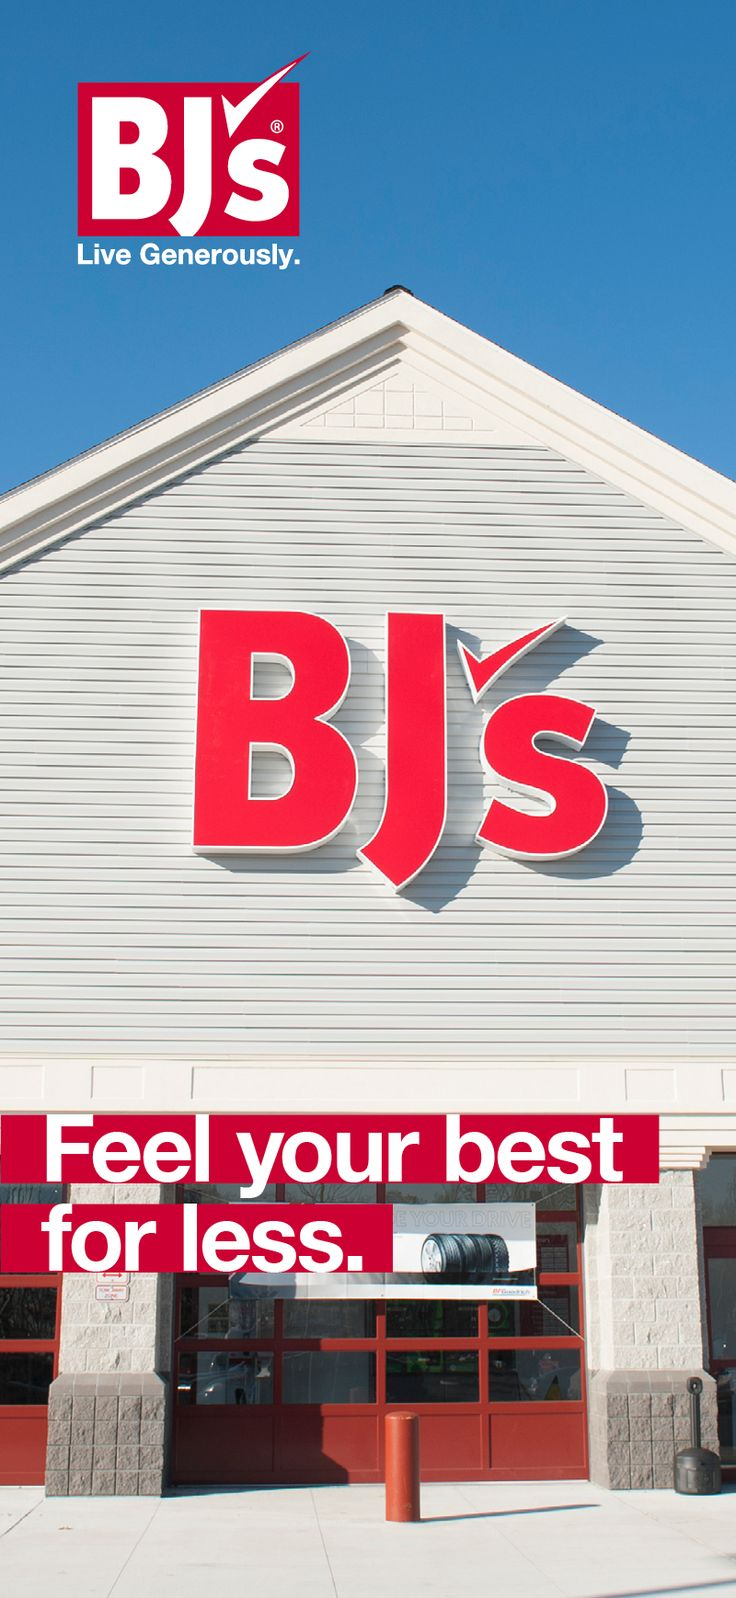 Sign up to save up to 25% off grocery store prices.   http://www.bjs.com/jan17.content.minisite_NonMAP_SFPin.D?utm_source=Pinterest&utm_medium=14.9P